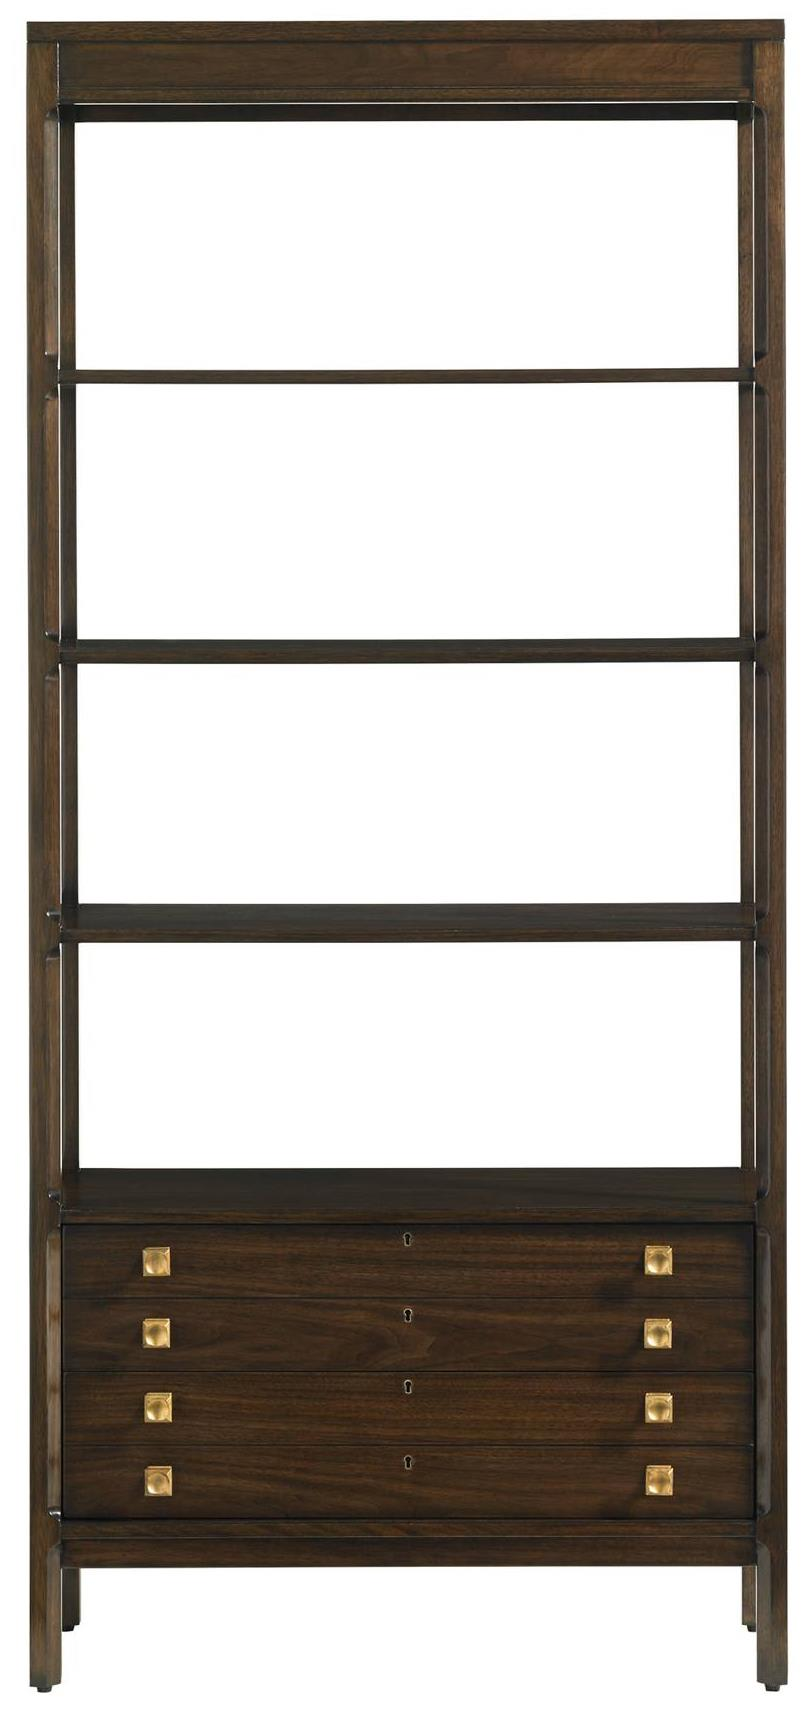 Stanley Furniture Crestaire Welton Bookcase - Item Number: 436-15-18